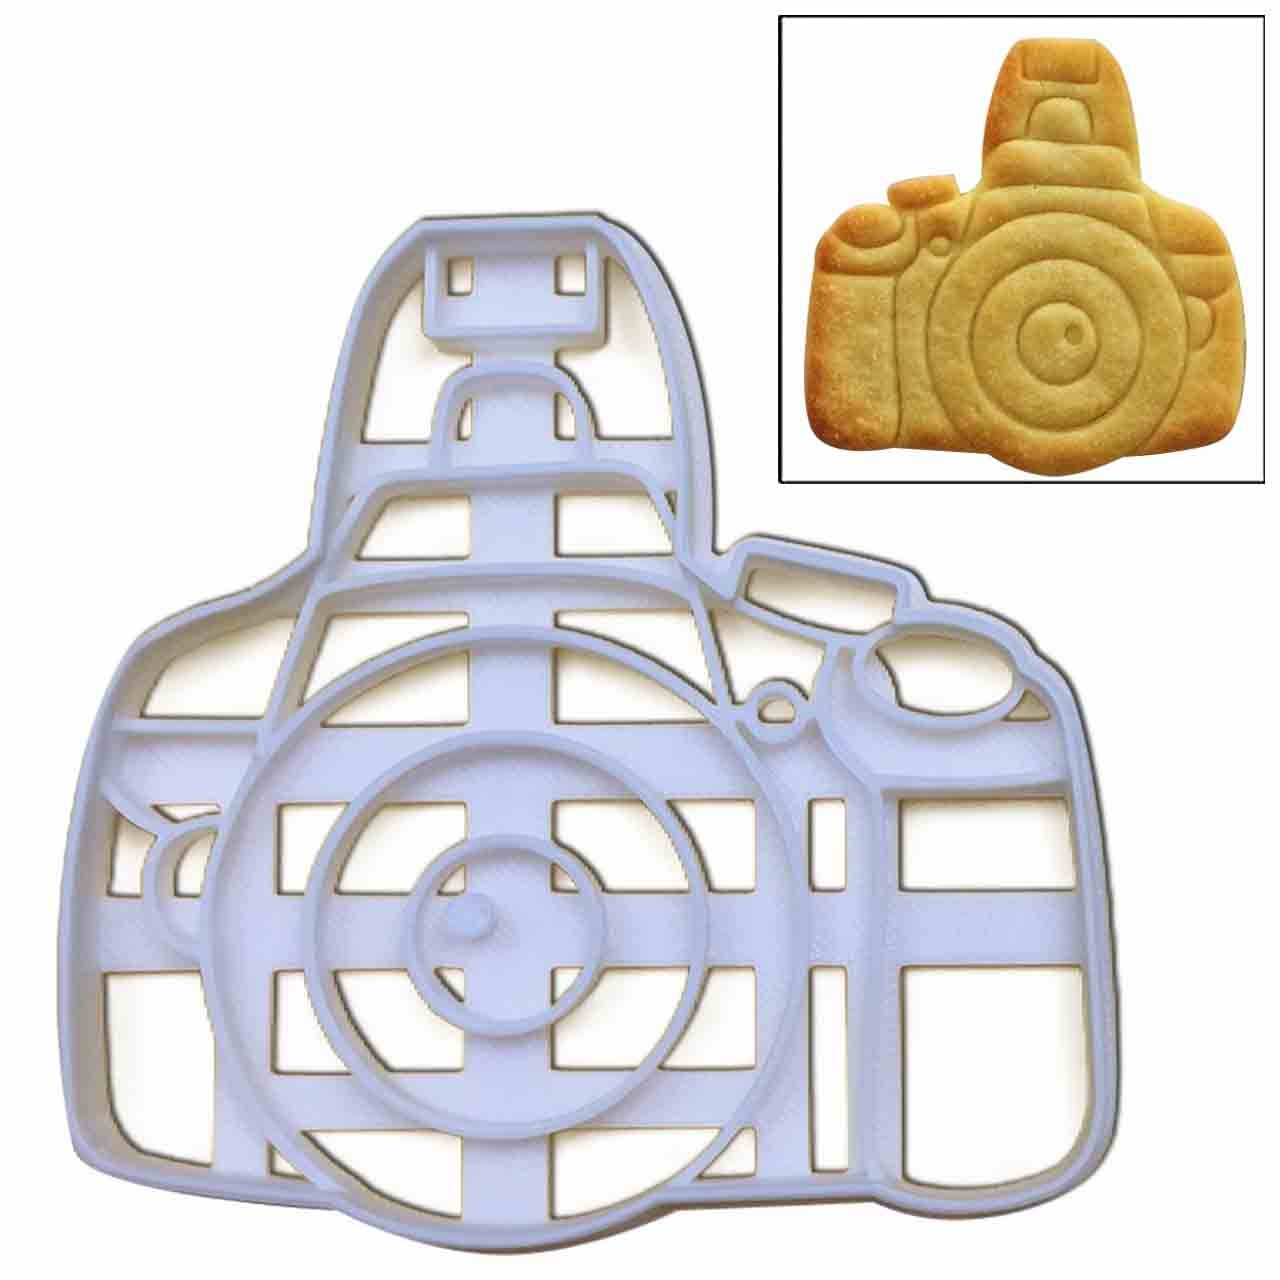 DSLR Camera cookie cutter, 1 pc, Ideal Gift for Photographers